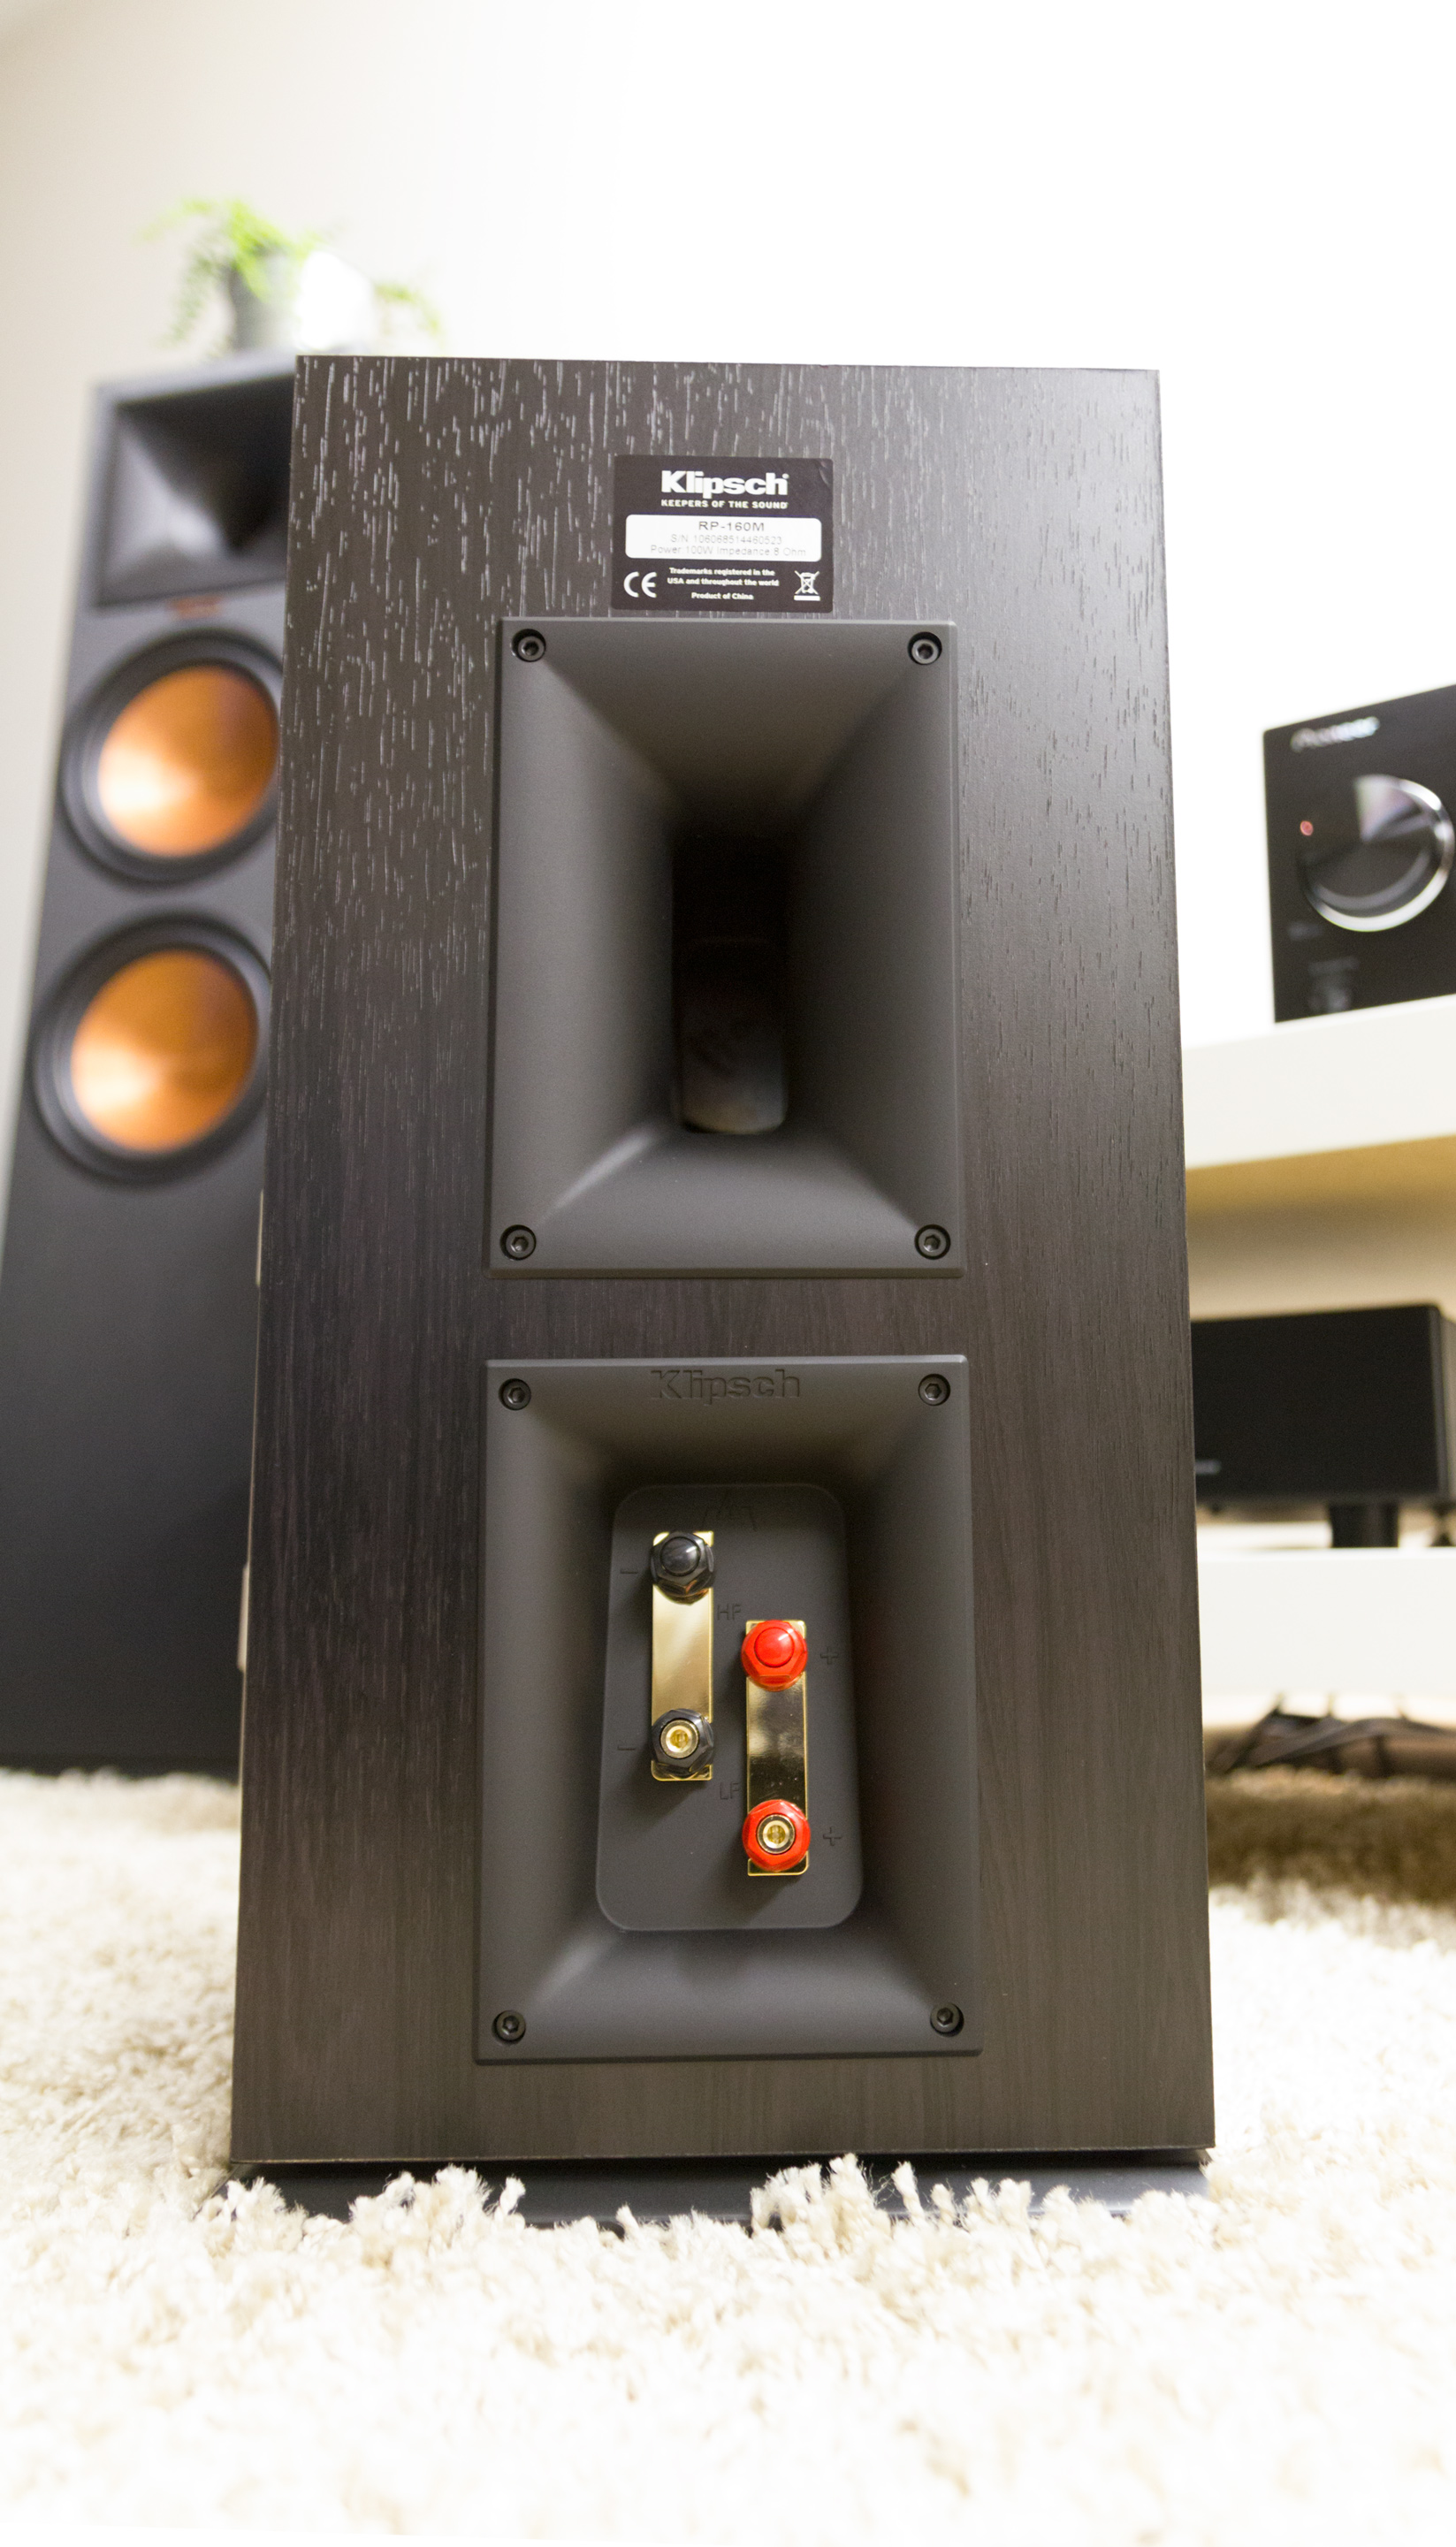 Review: Klipsch RP-280F, RP-160M and RP-540C speakers - Son